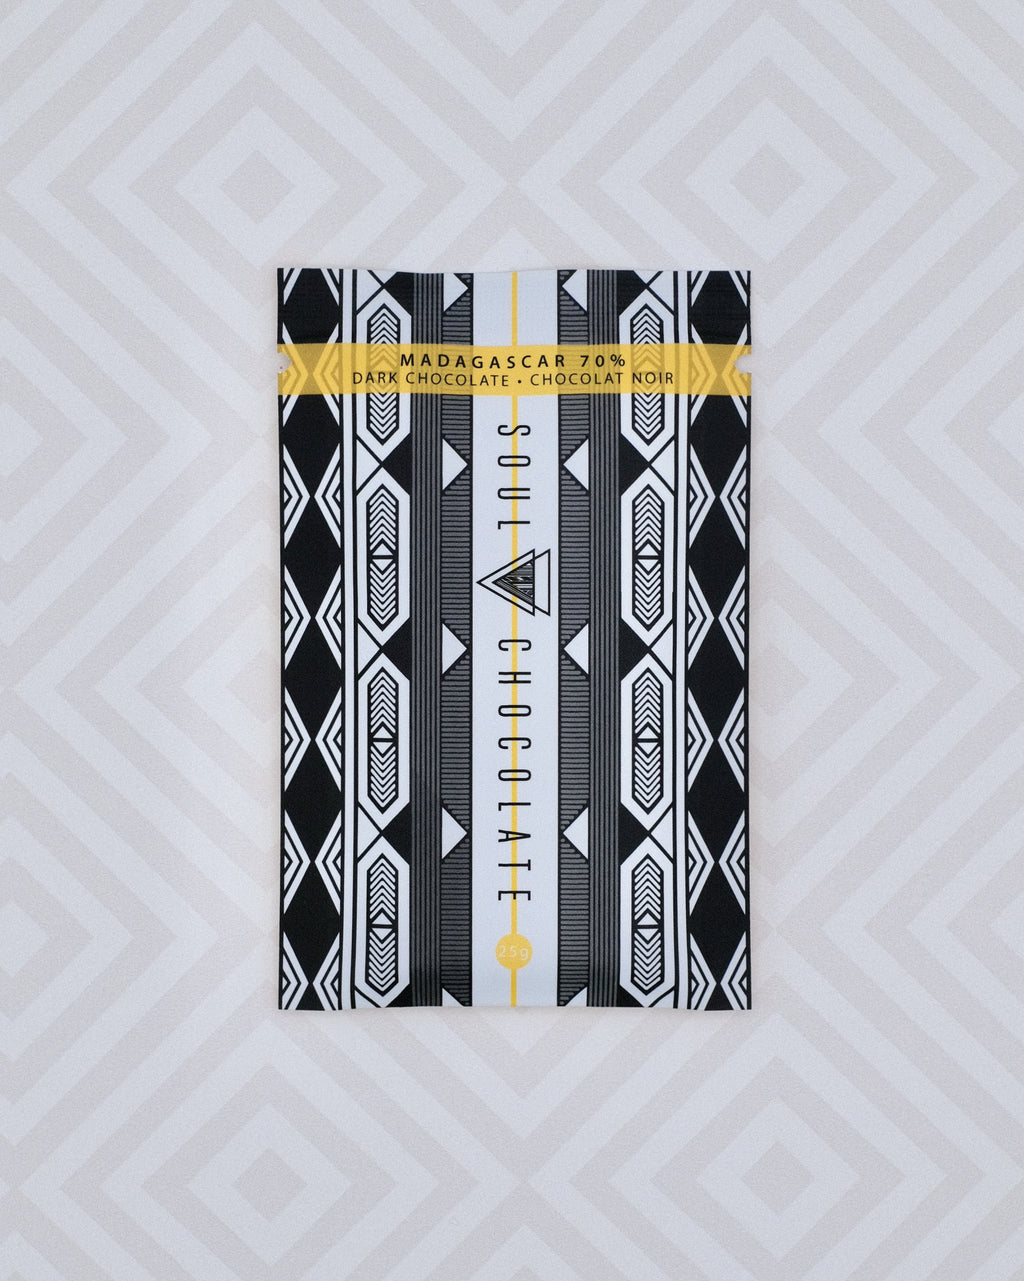 The front of our Madagascar 70% Dark Chocolate bar has a fun black and white textile pattern that we fell in love with. It reminds us of Madagascar every time we see it.